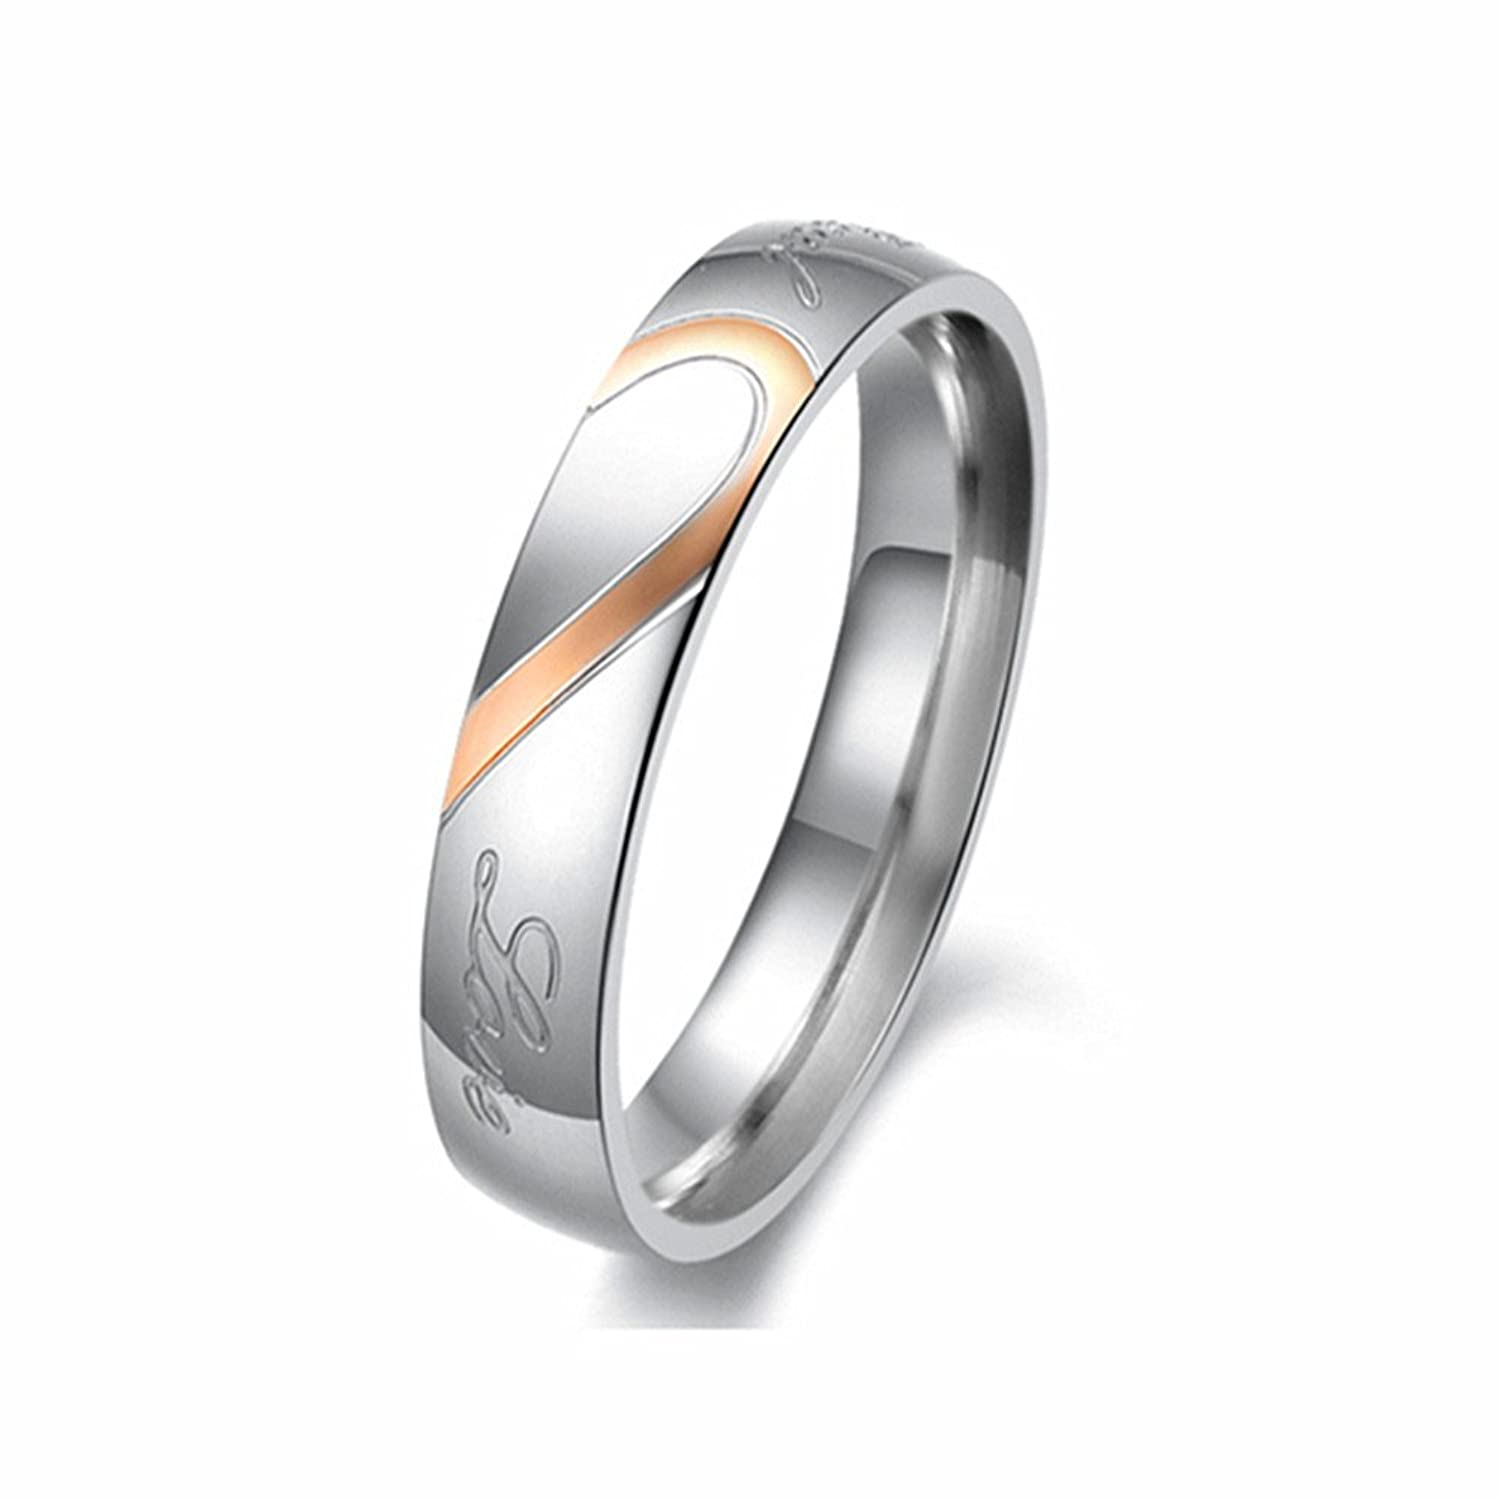 Amazon U2U Jewelry Stainless Steel 0109 Engraved Couples